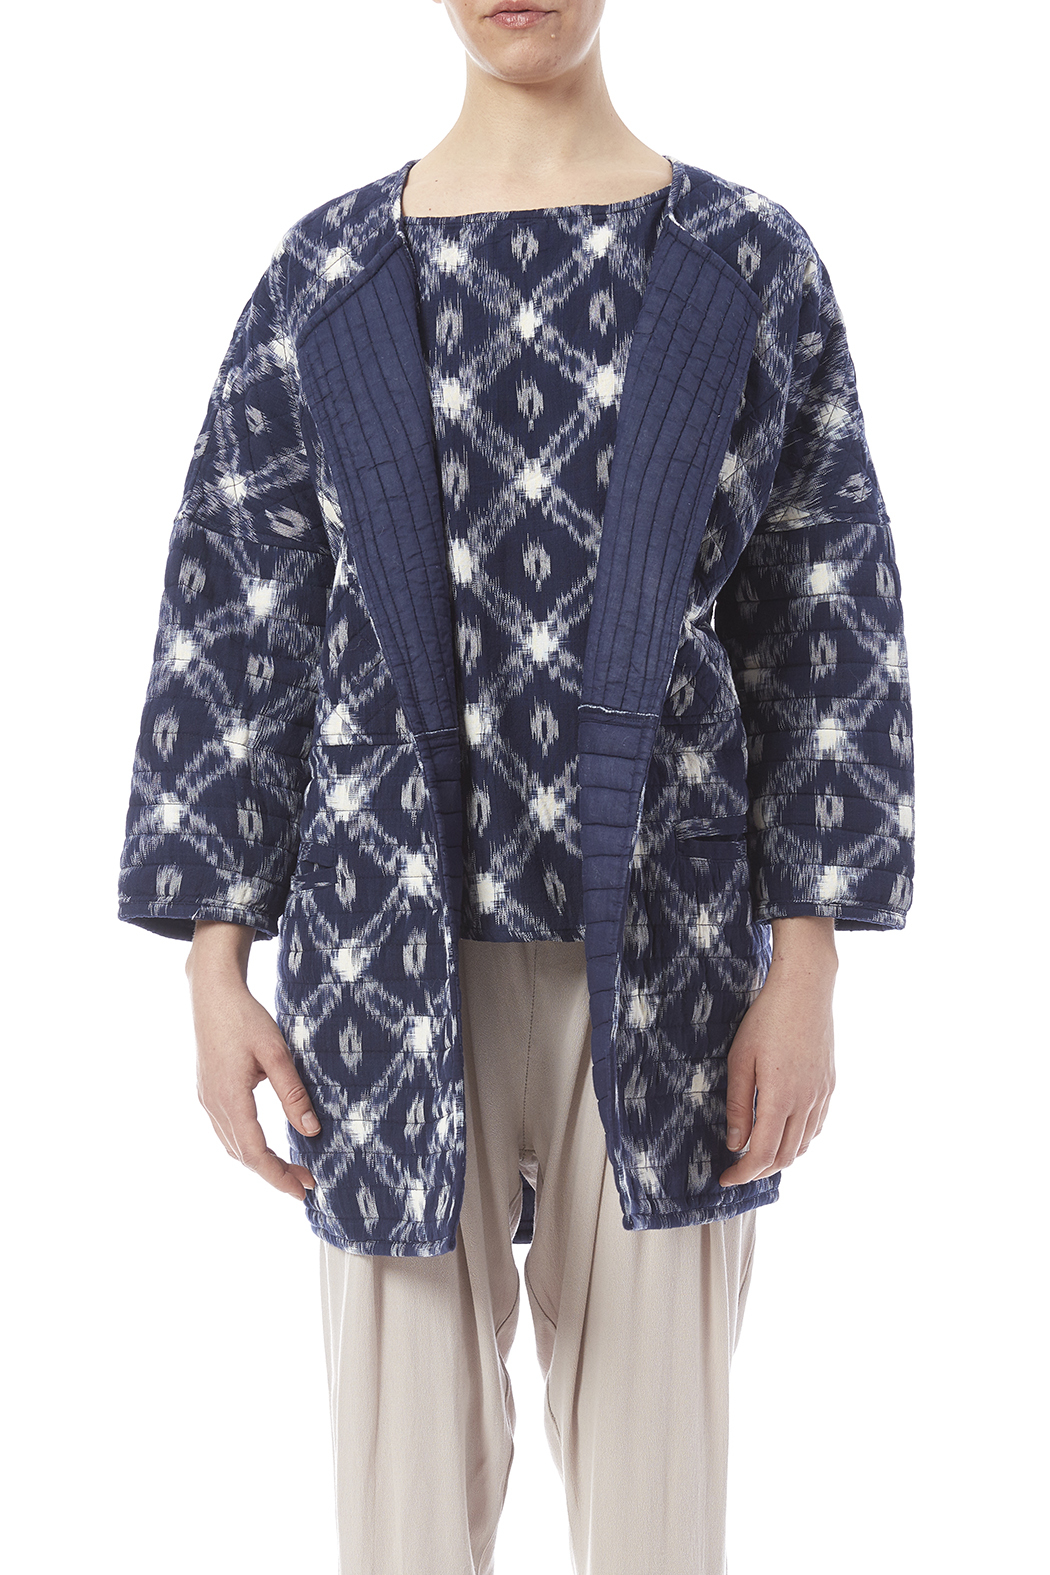 The ODells Quilted Ikat Jacket from Rhode Island by DISH — Shoptiques